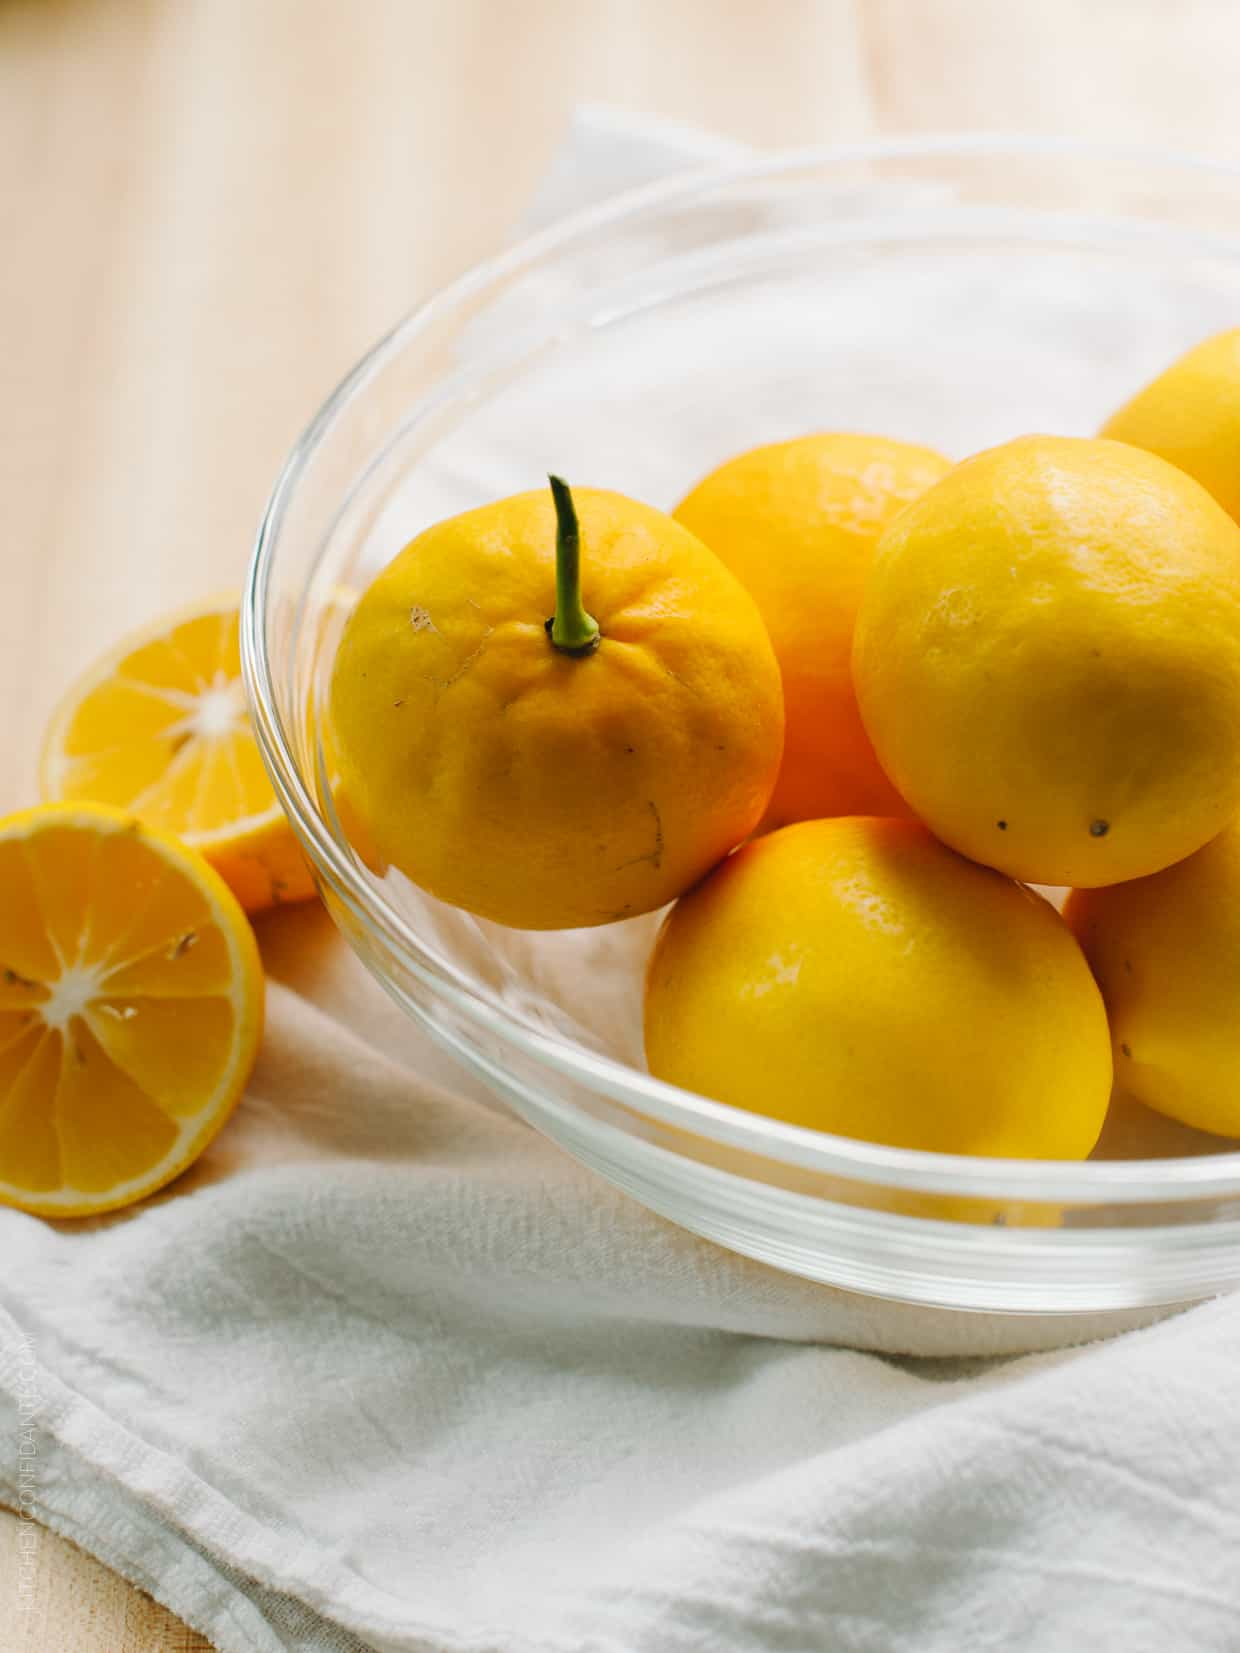 A bowl filled with Meyer lemons.